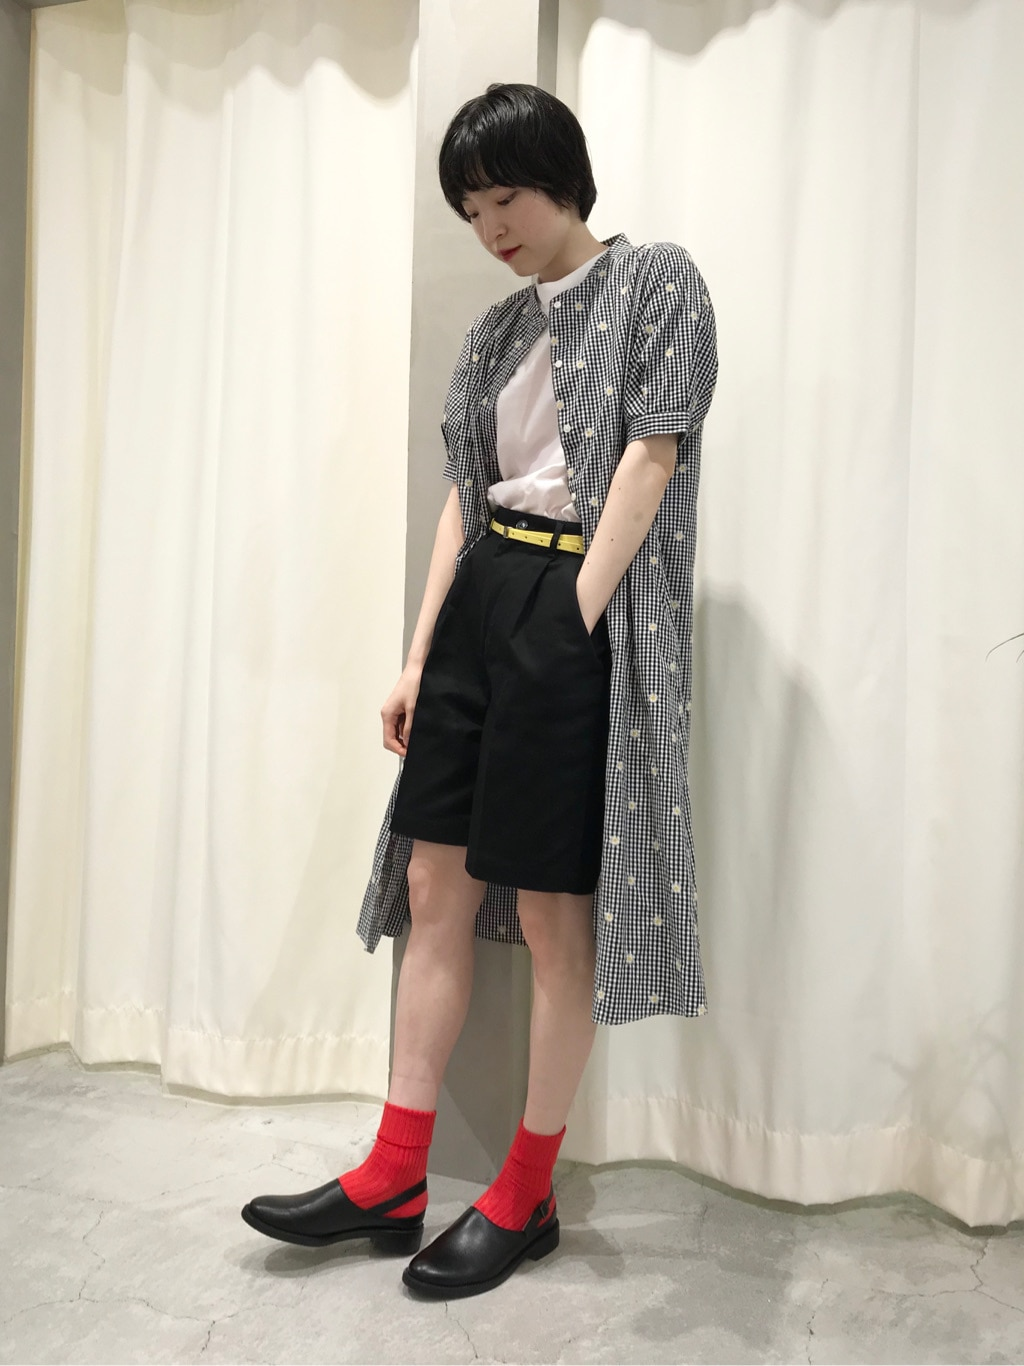 Dot and Stripes CHILD WOMAN ルミネ池袋 身長:163cm 2020.06.26